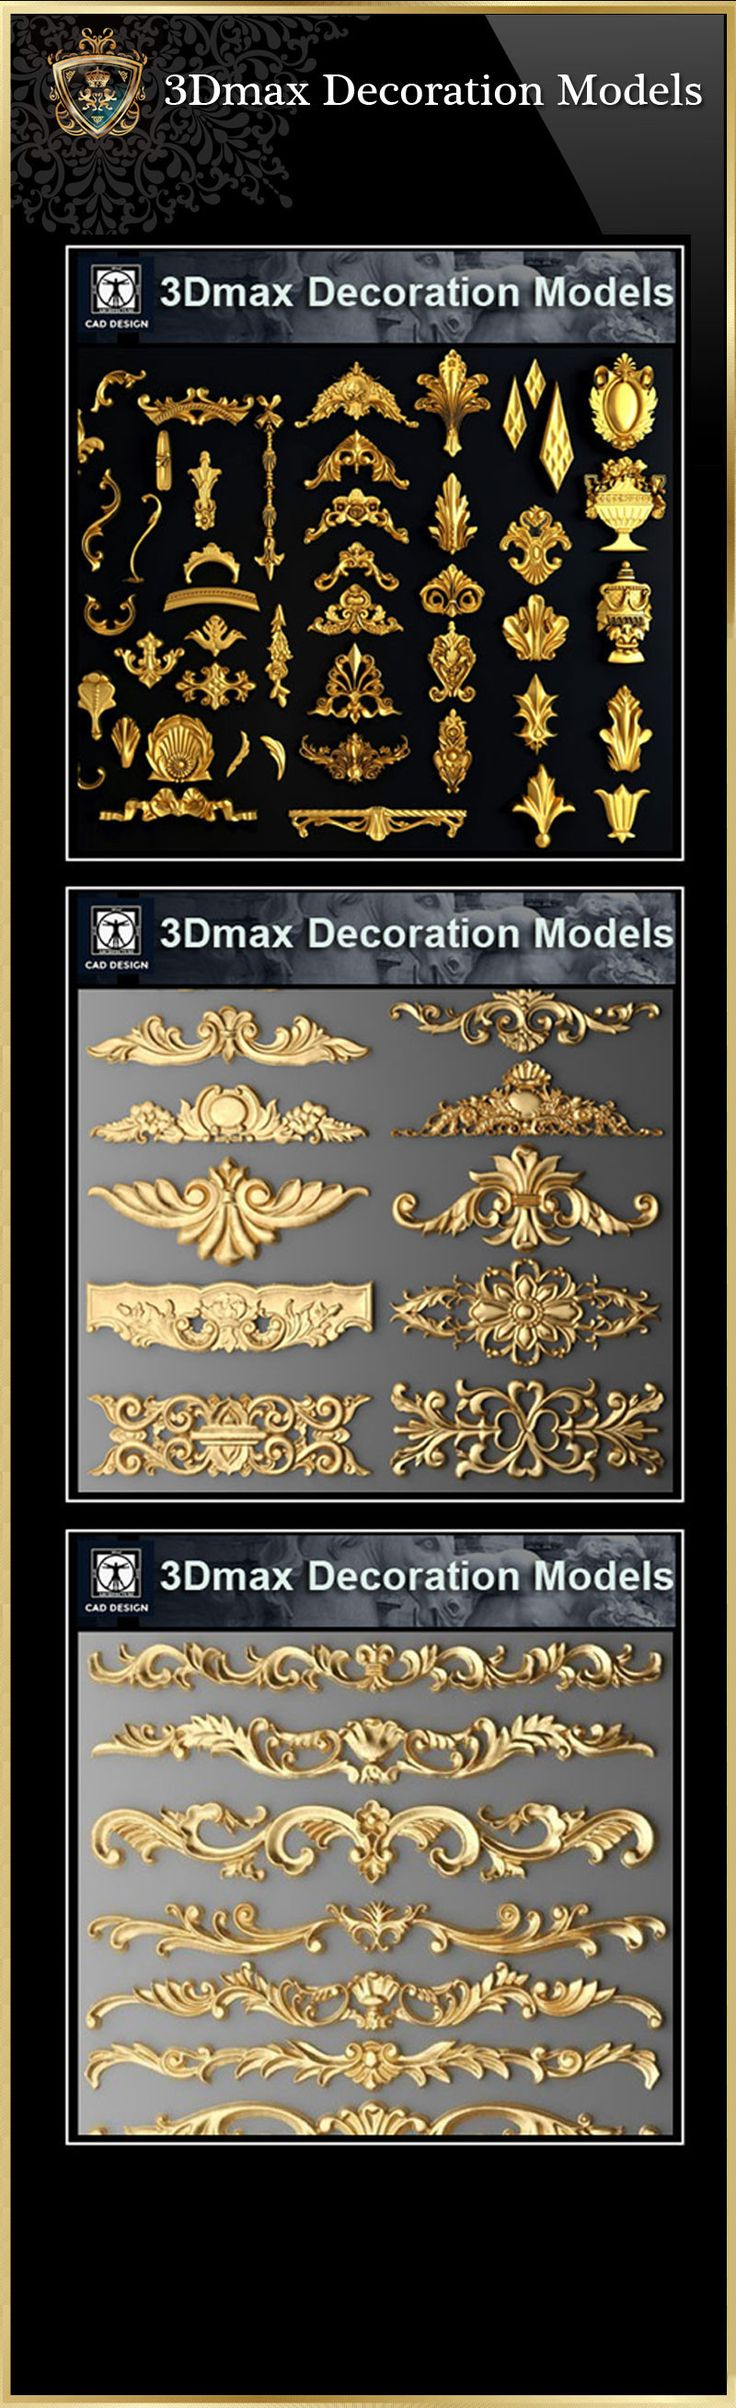 【All 3D Max Decoration Models Bundle】(Best Recommanded!!) – CAD Design | Free CAD Blocks,Drawings,Details